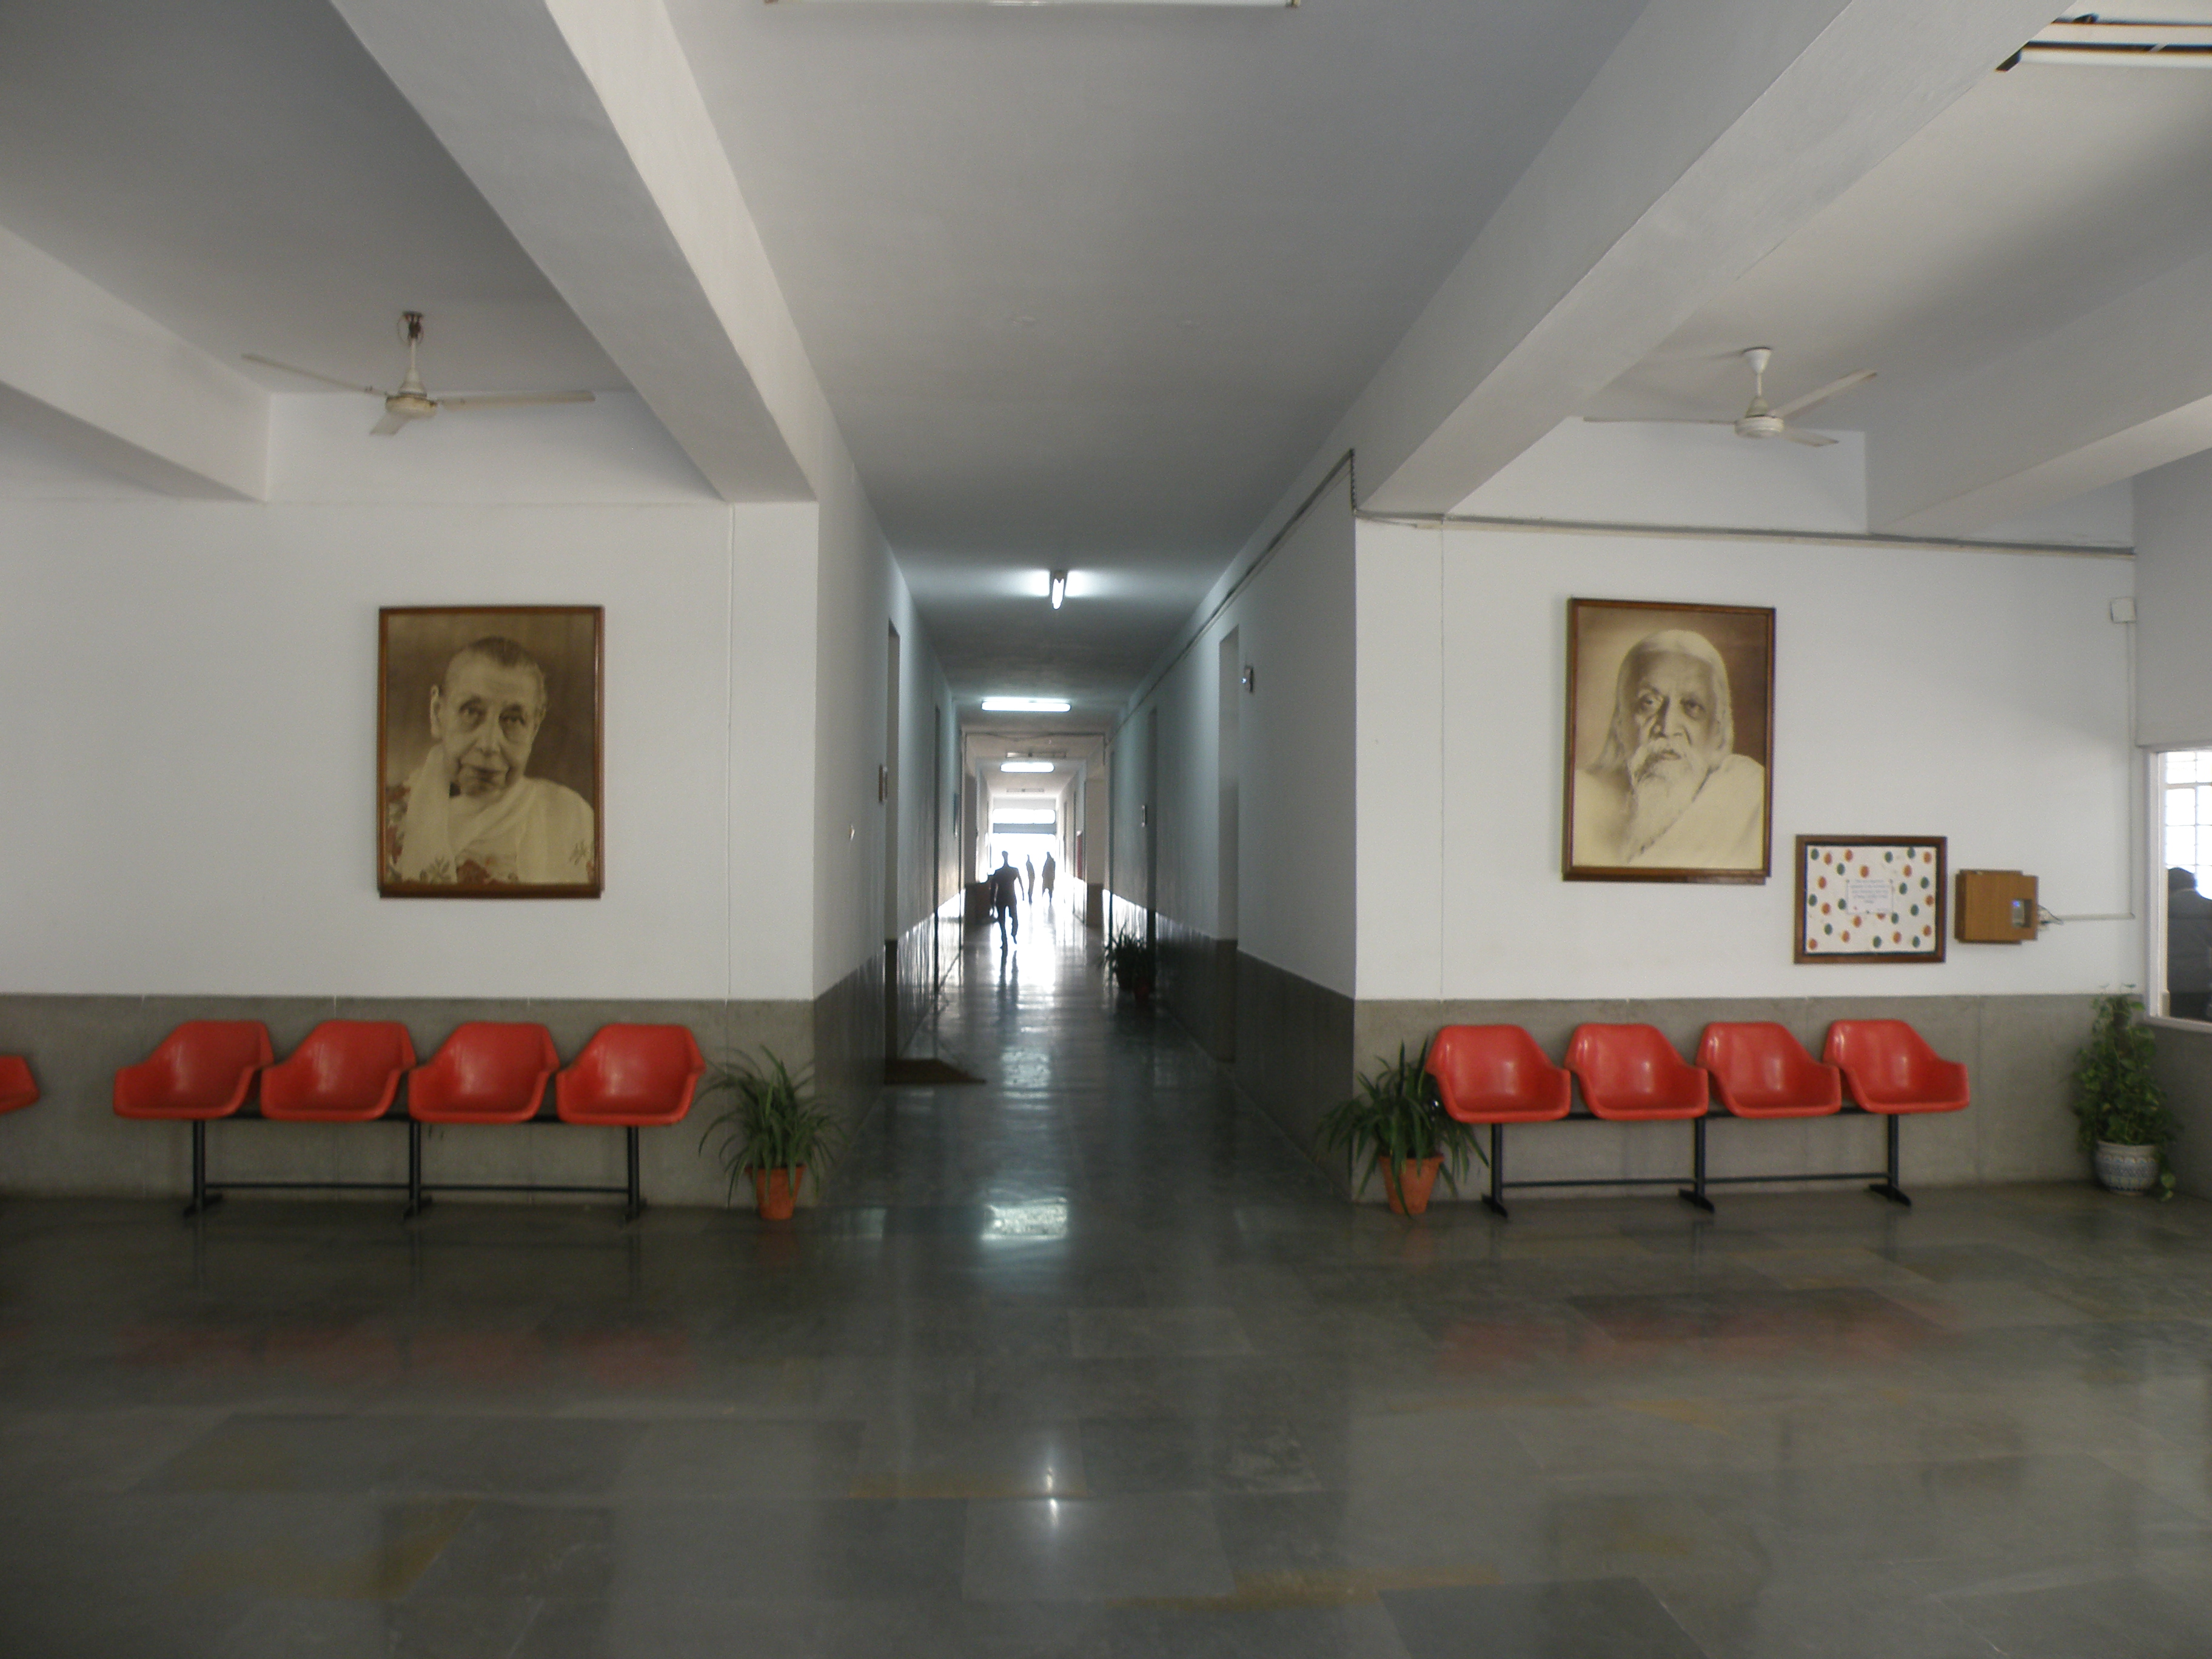 Office Foyer Images : File foyer near principal s office mother international